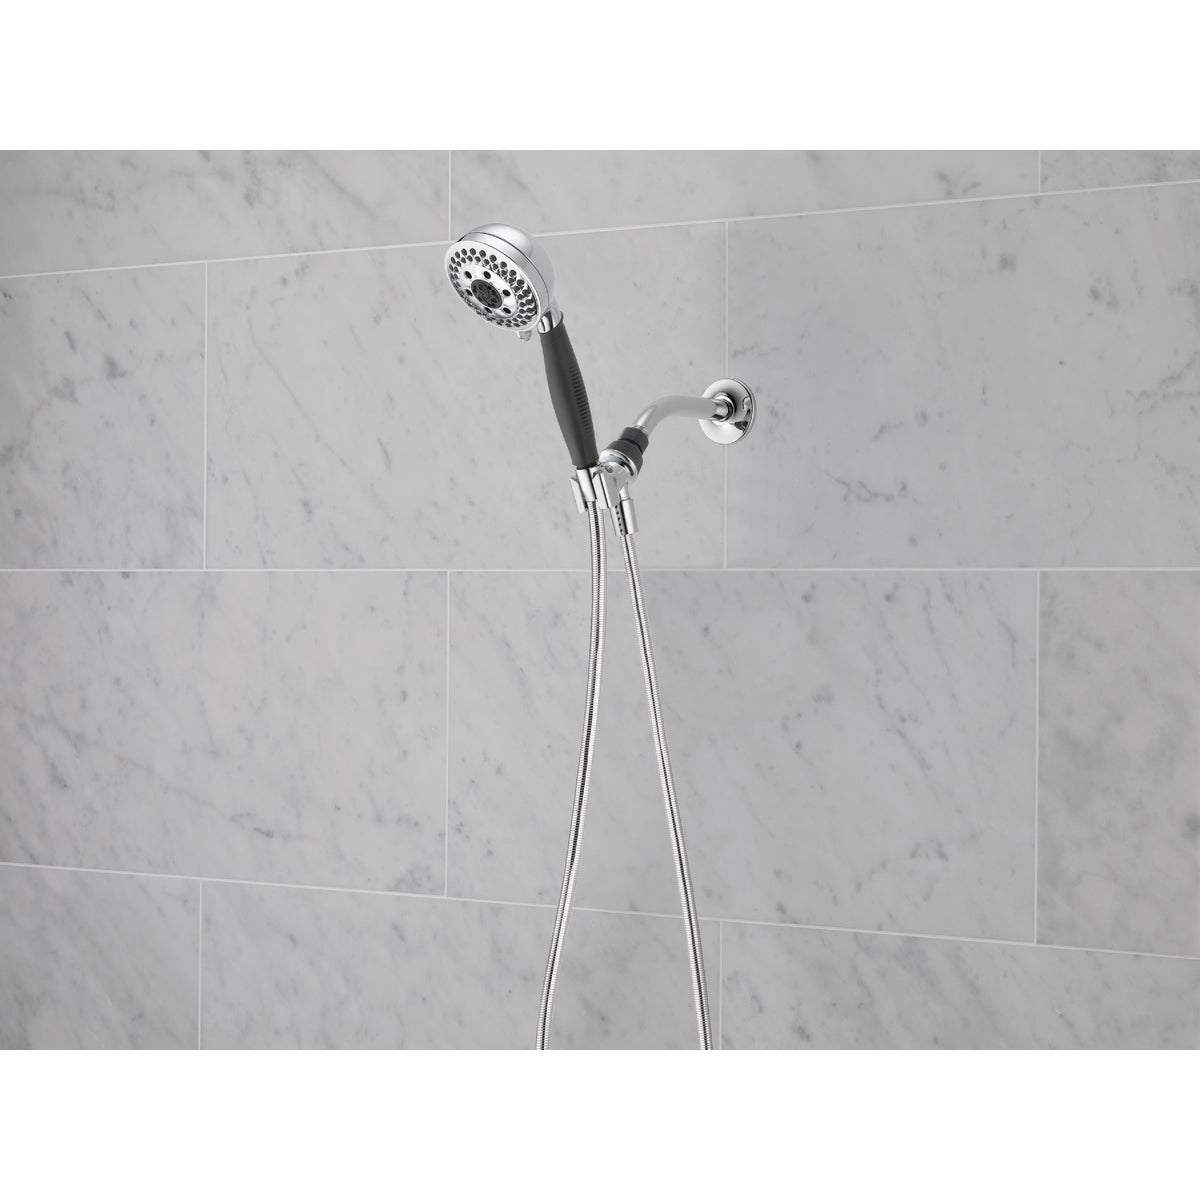 CHR 5-SET HH SHOWERHEAD